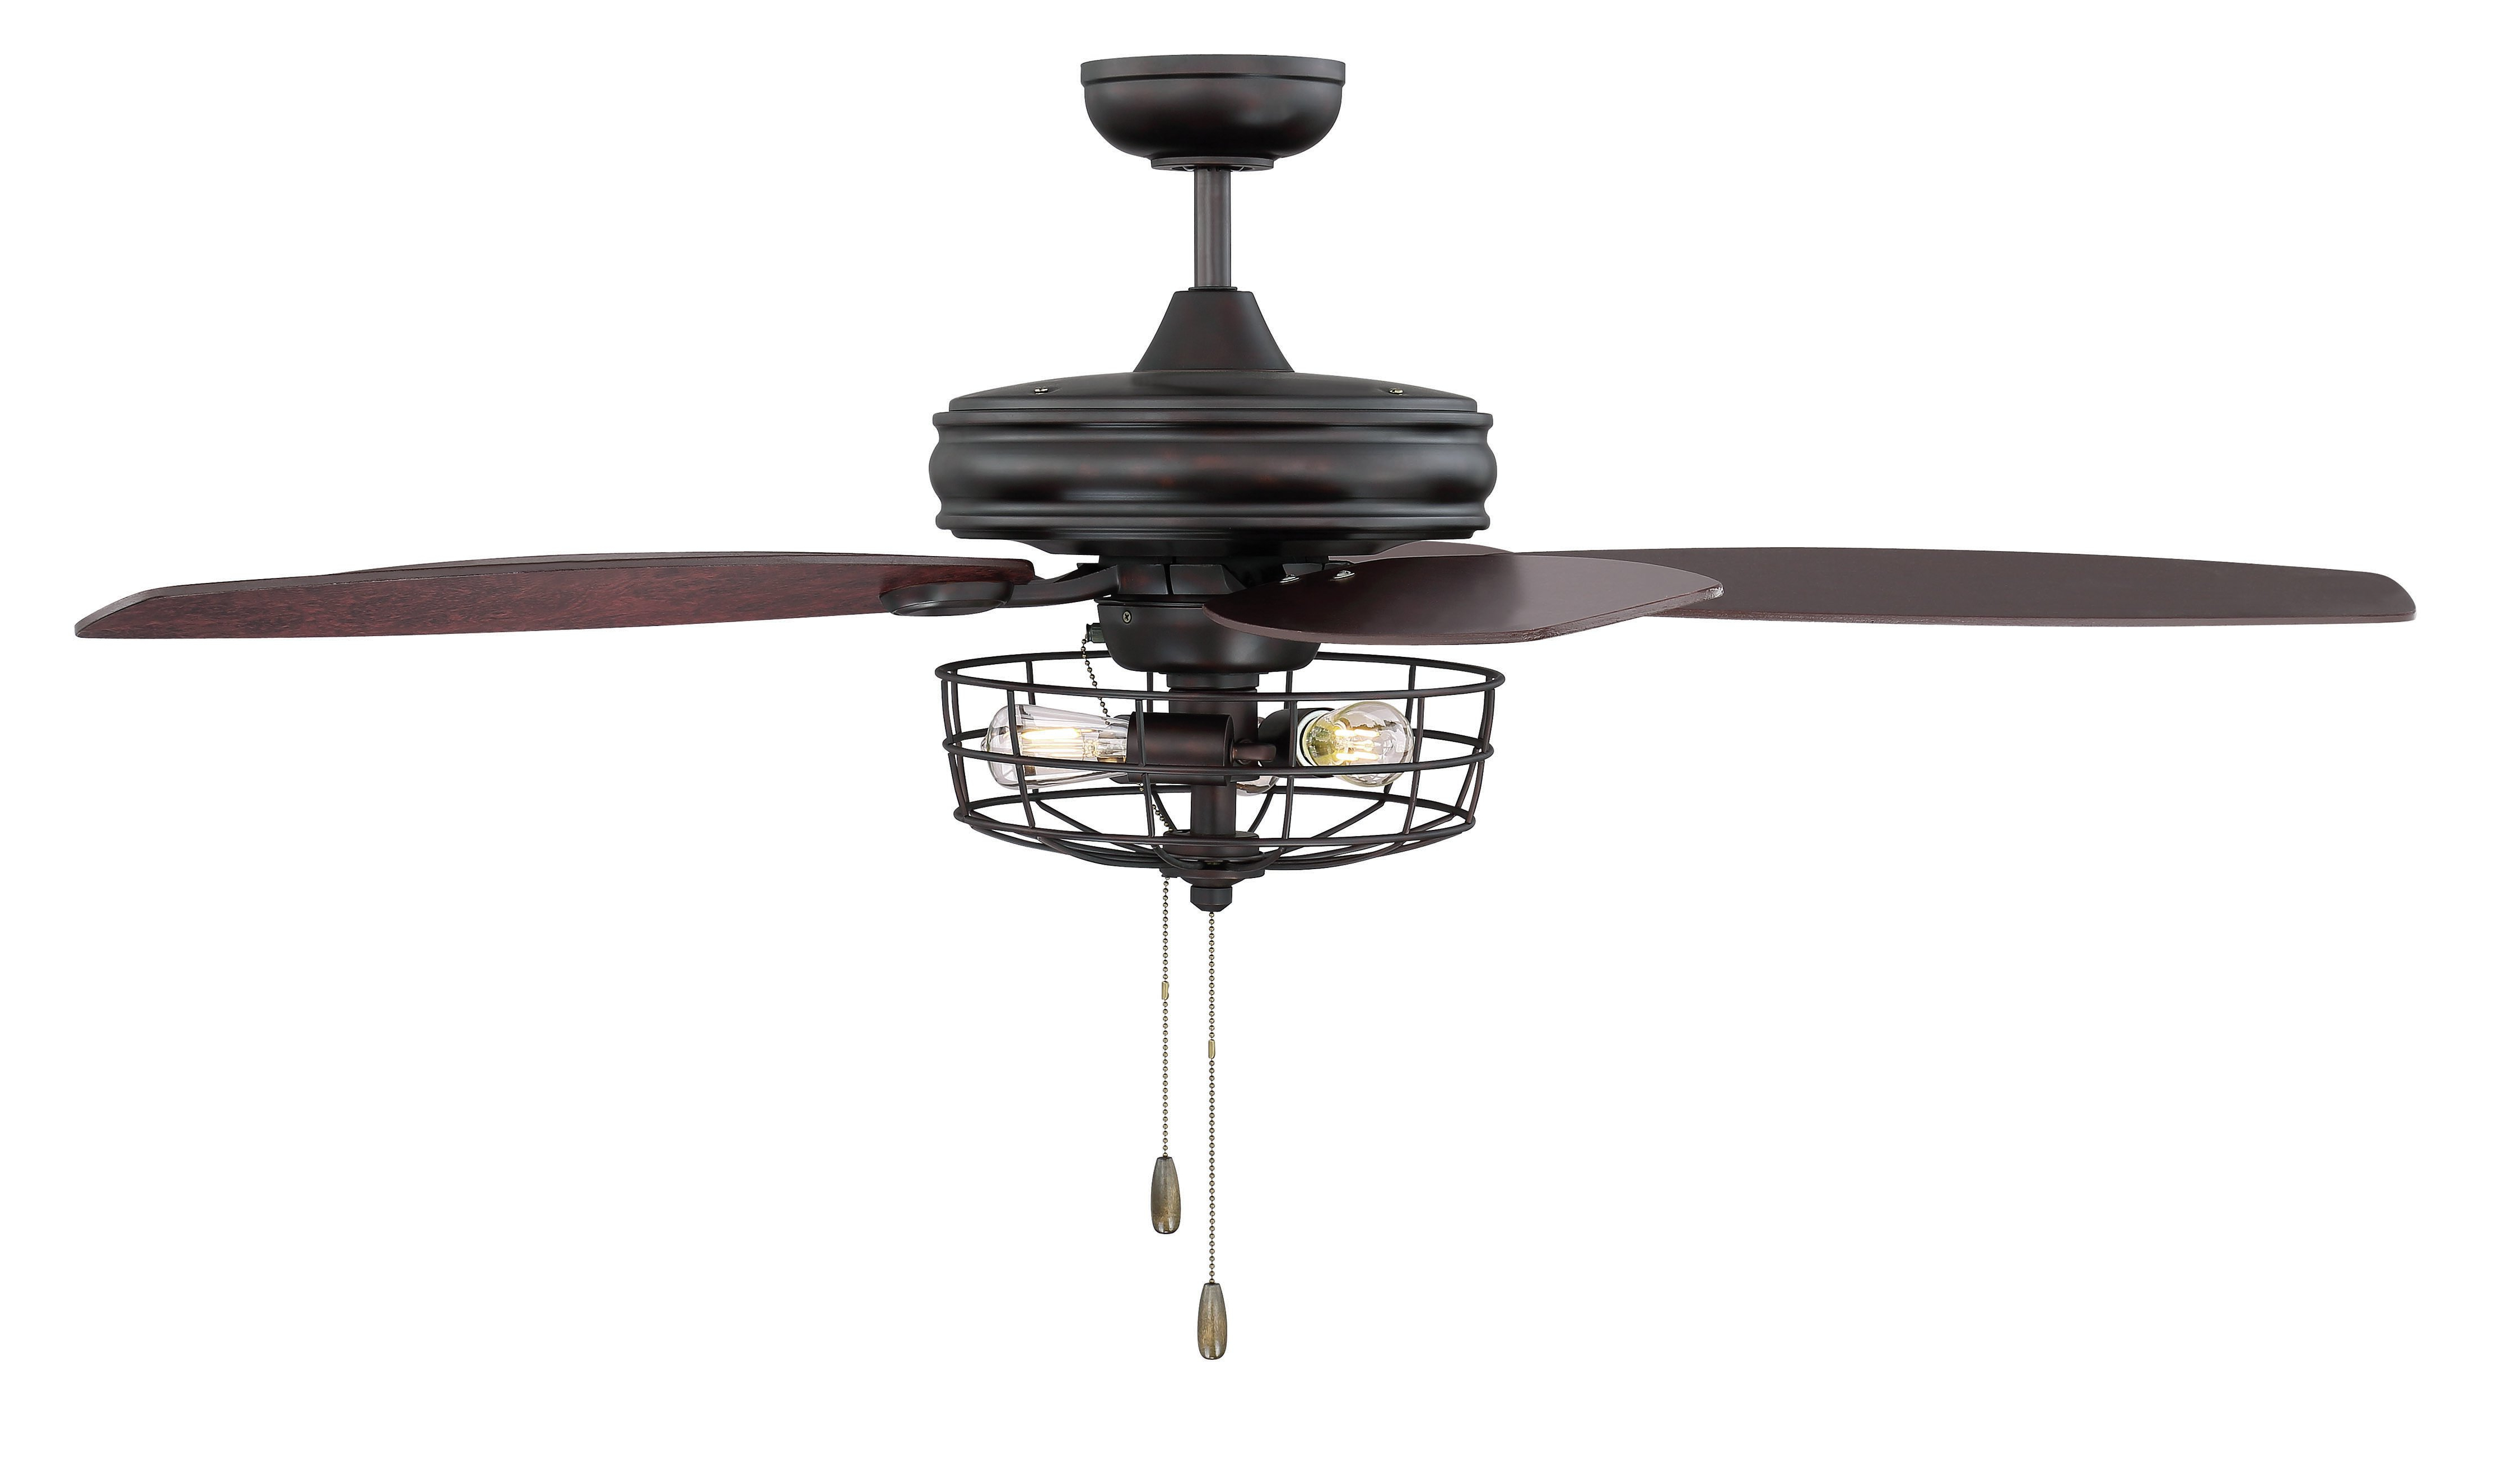 """Wilburton 3 Blade Outdoor Ceiling Fans Throughout Popular 52"""" Glenpool 5 Blade Ceiling Fan, Light Kit Included (View 18 of 20)"""